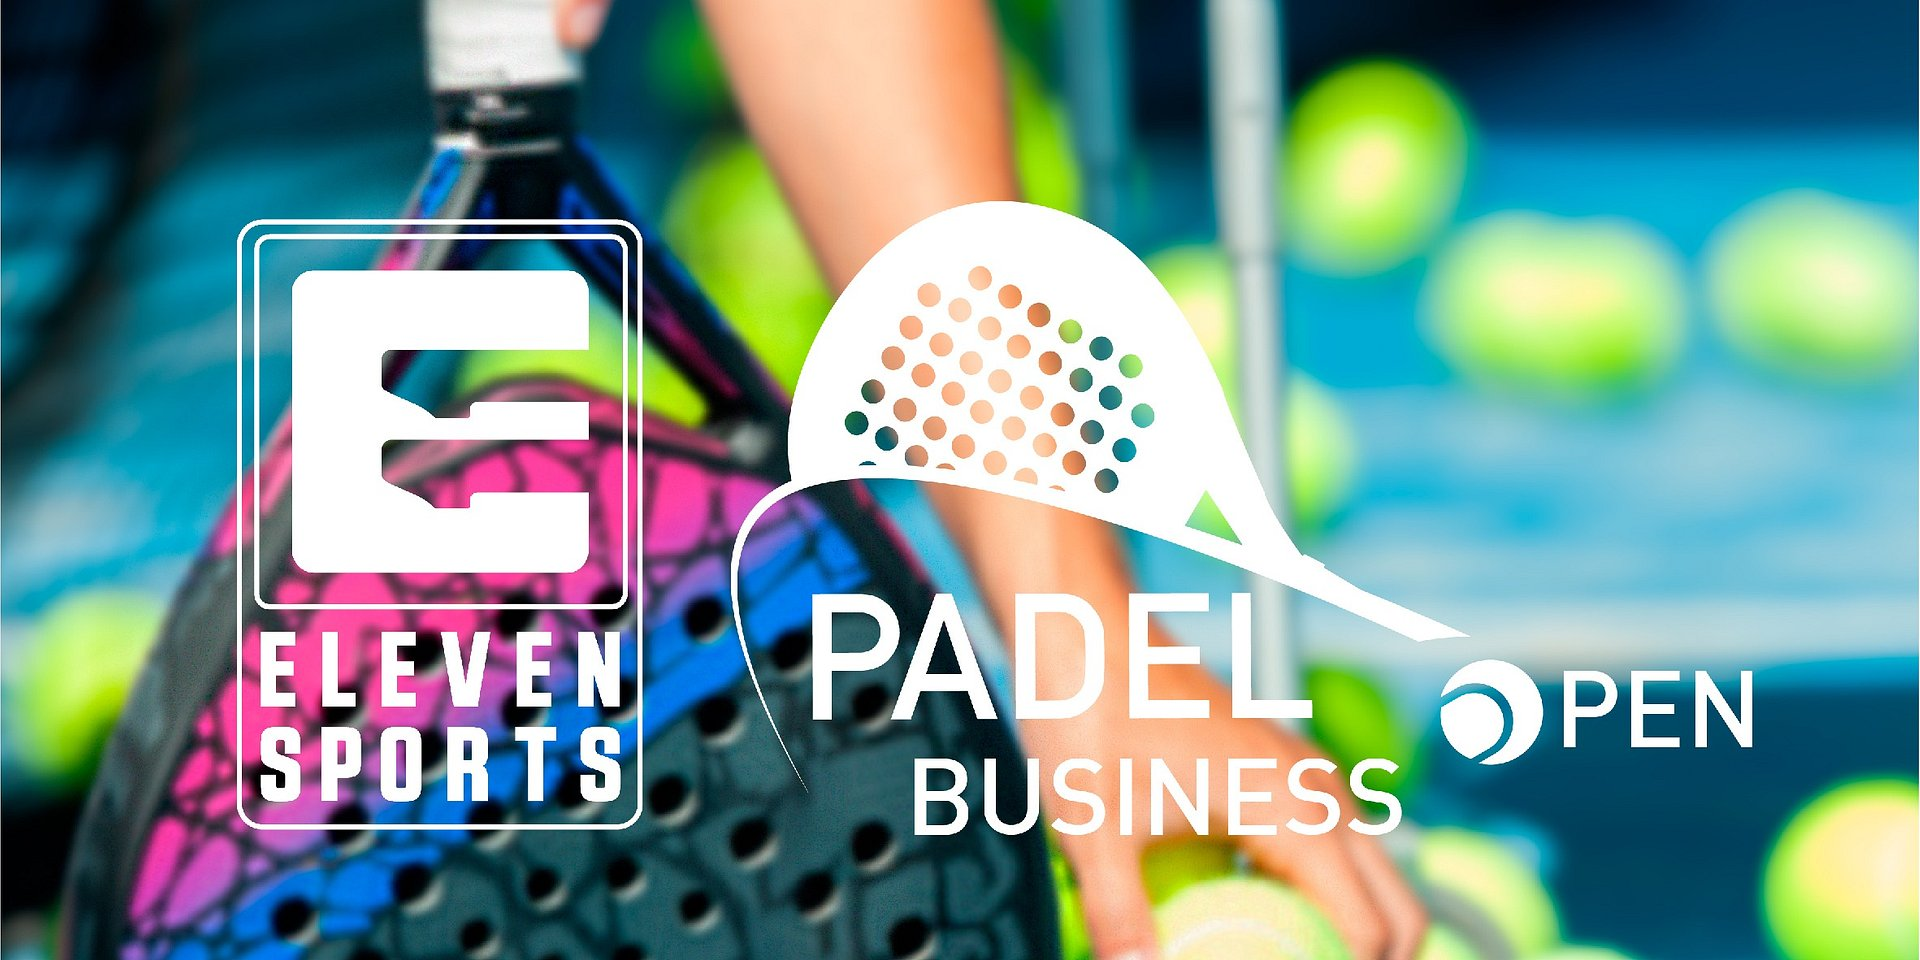 Eleven Sports dá naming ao Padel Business Open